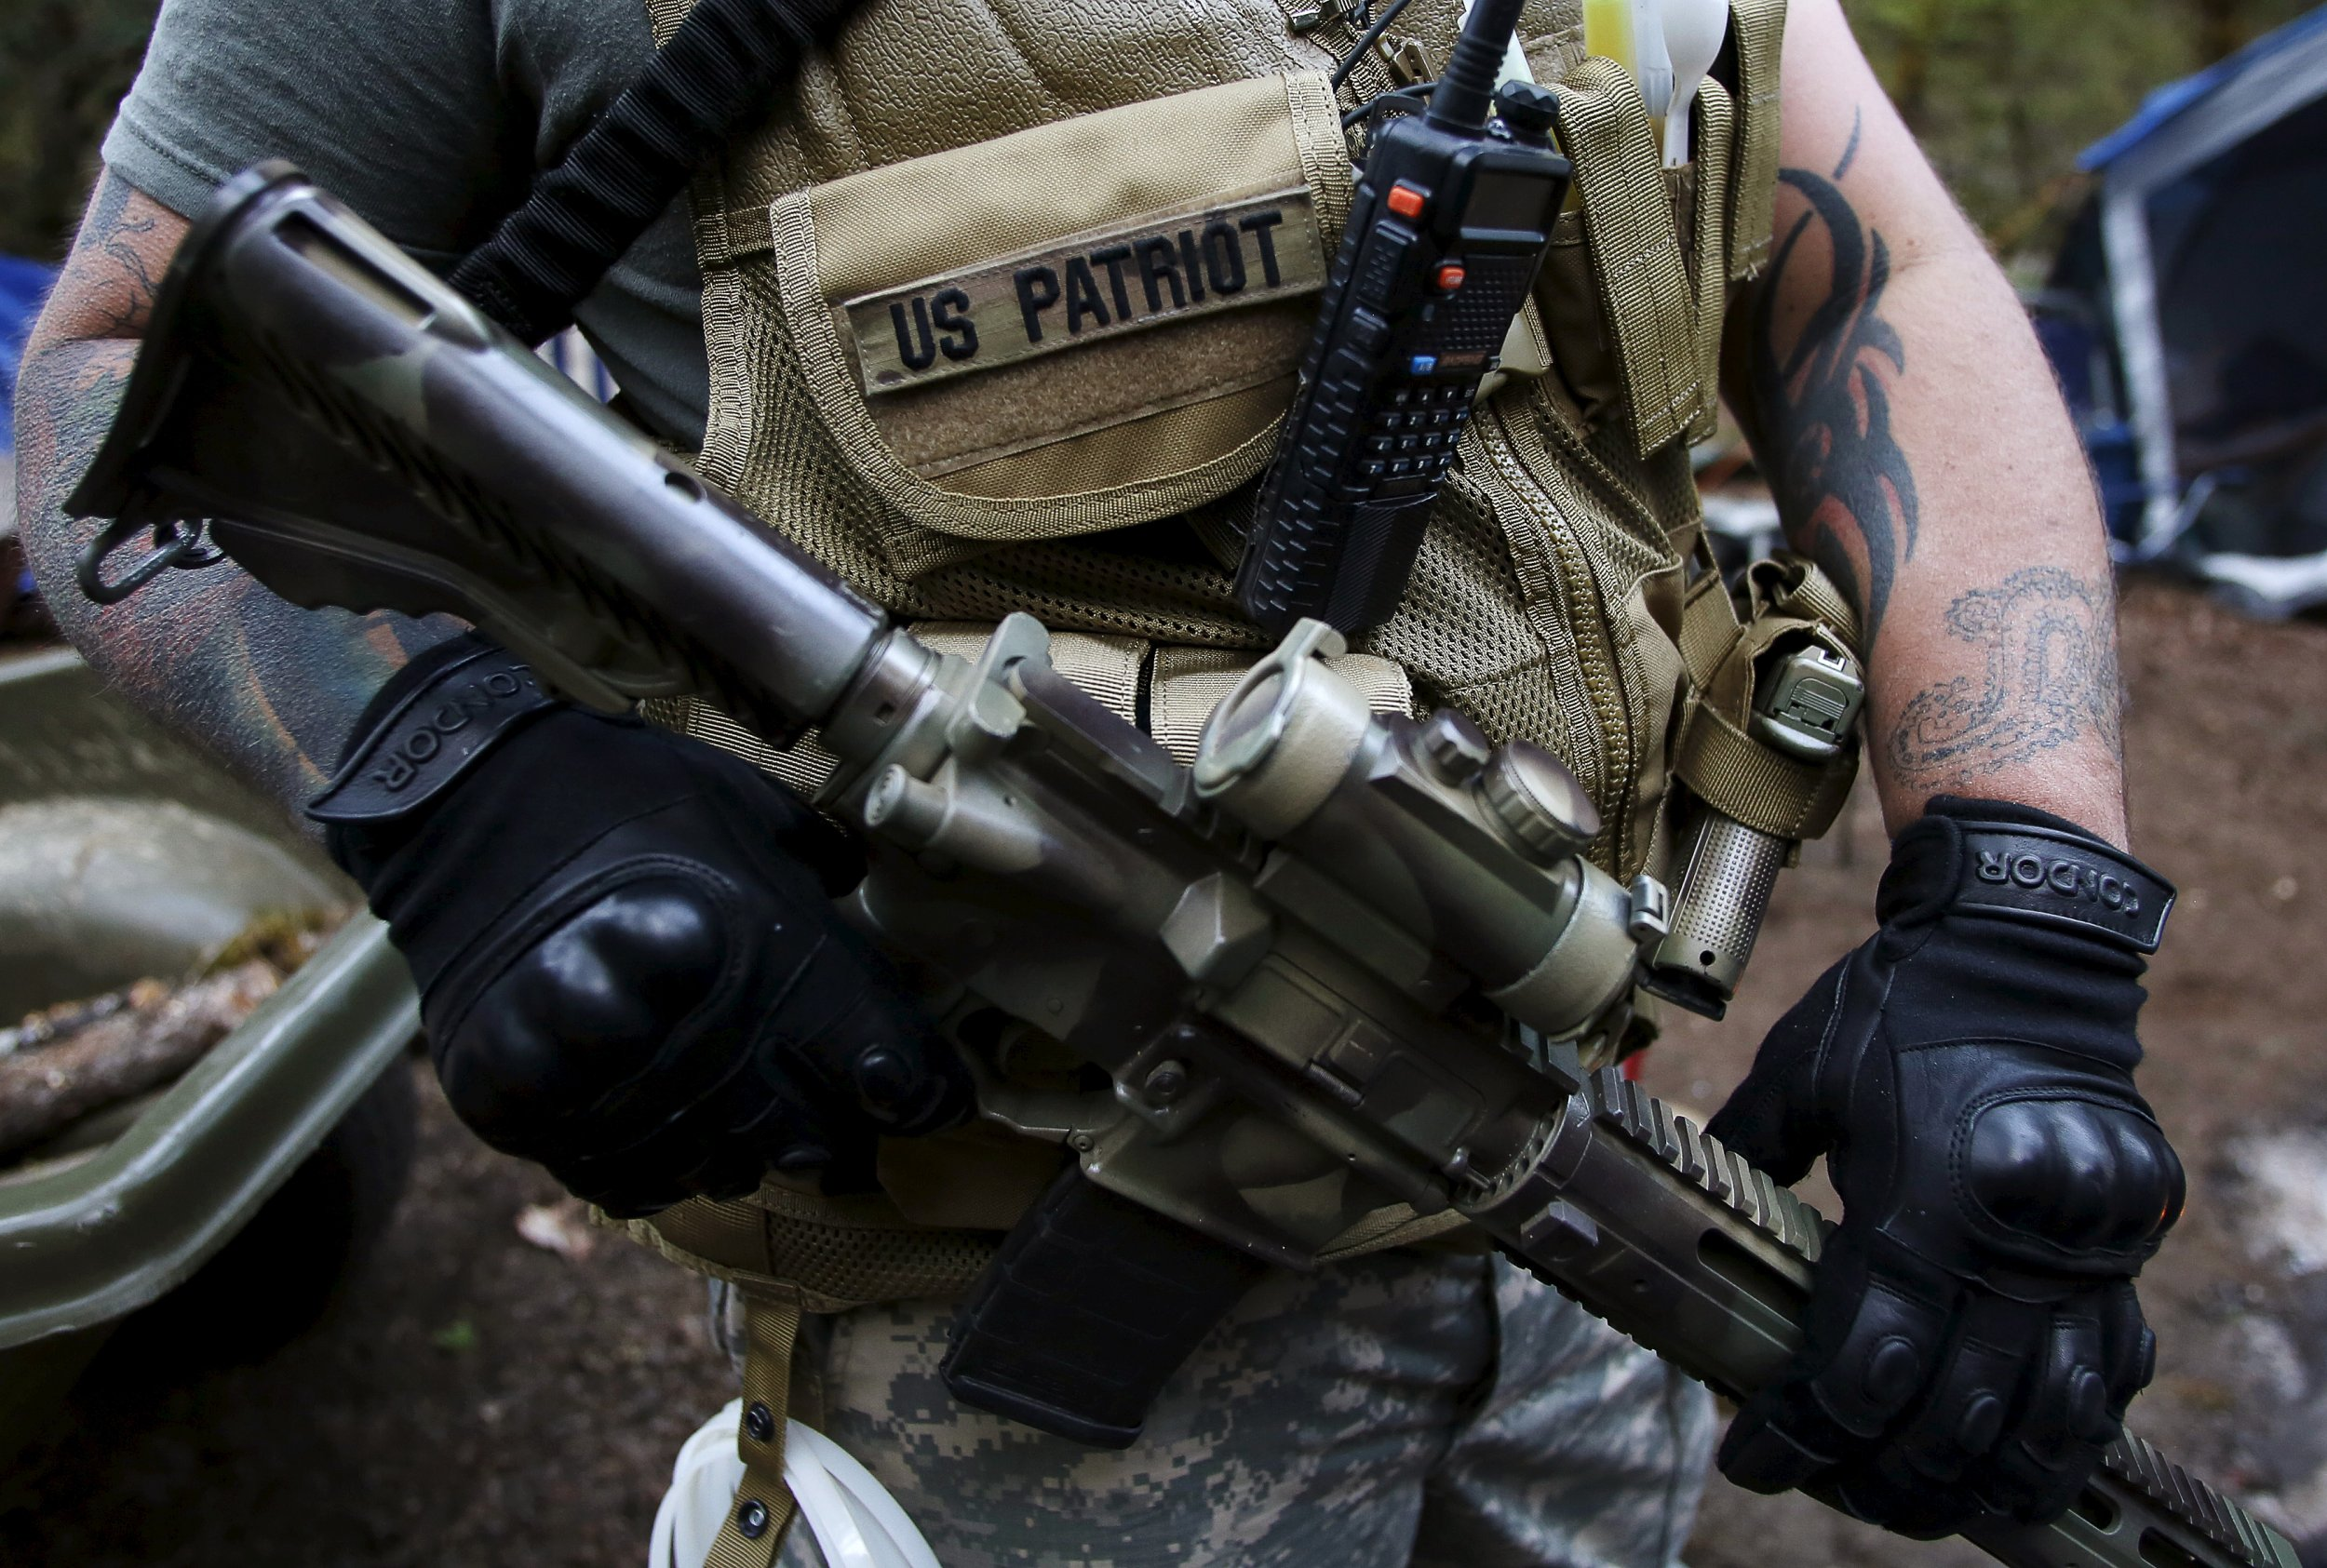 Member of the Oath Keepers